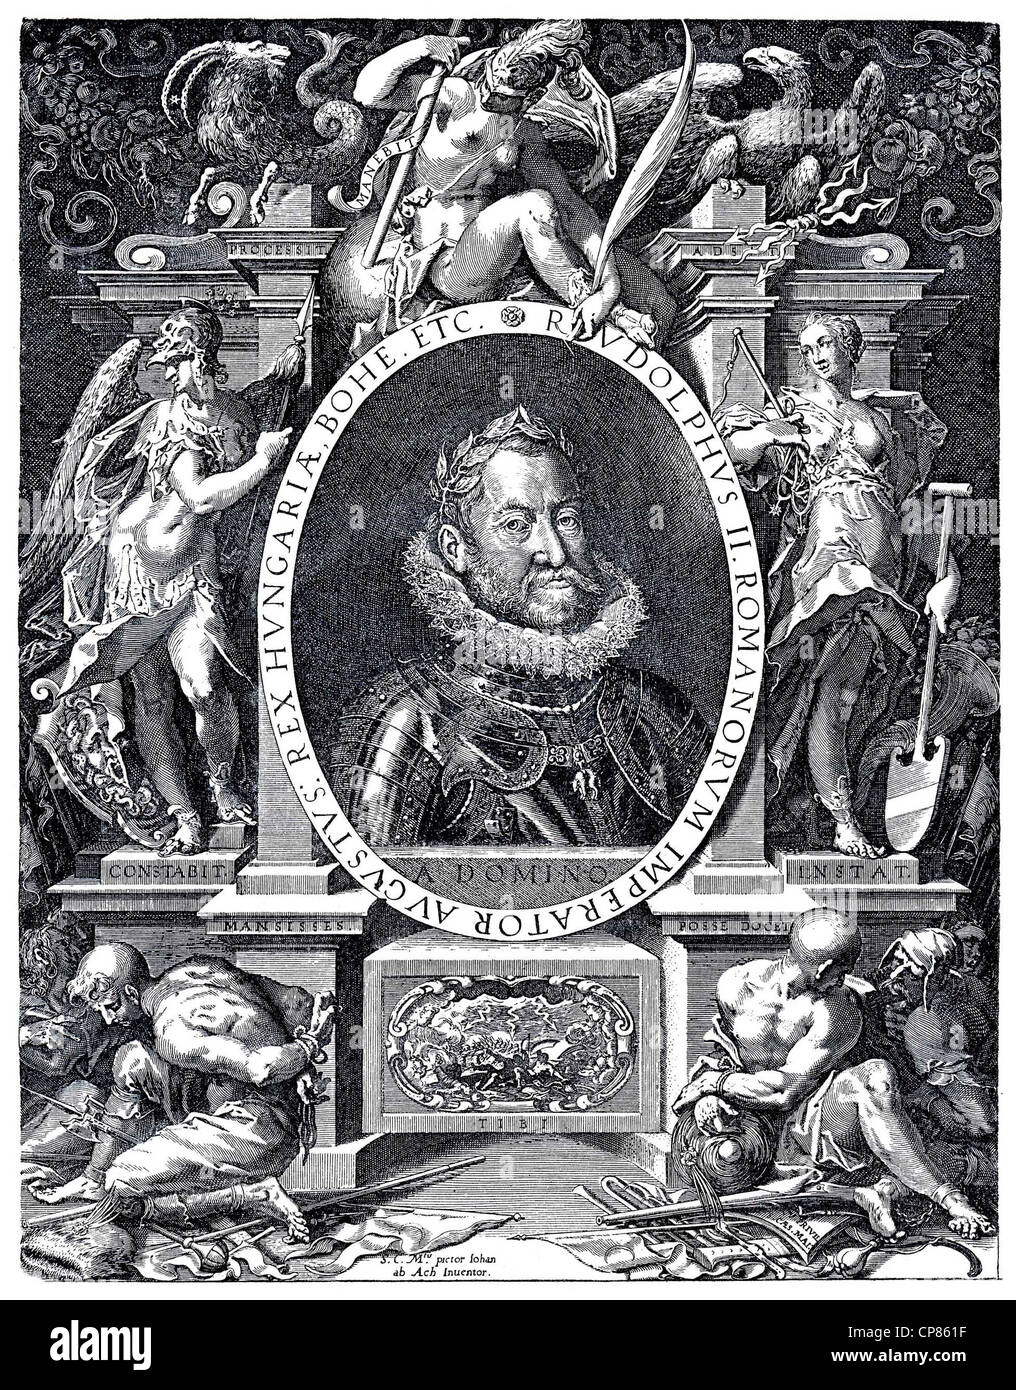 Allegory of the reign of Emperor Rudolph II, 1552 - 1612, copper engraving by Egidius Sadeler from the 17th Century, - Stock Image